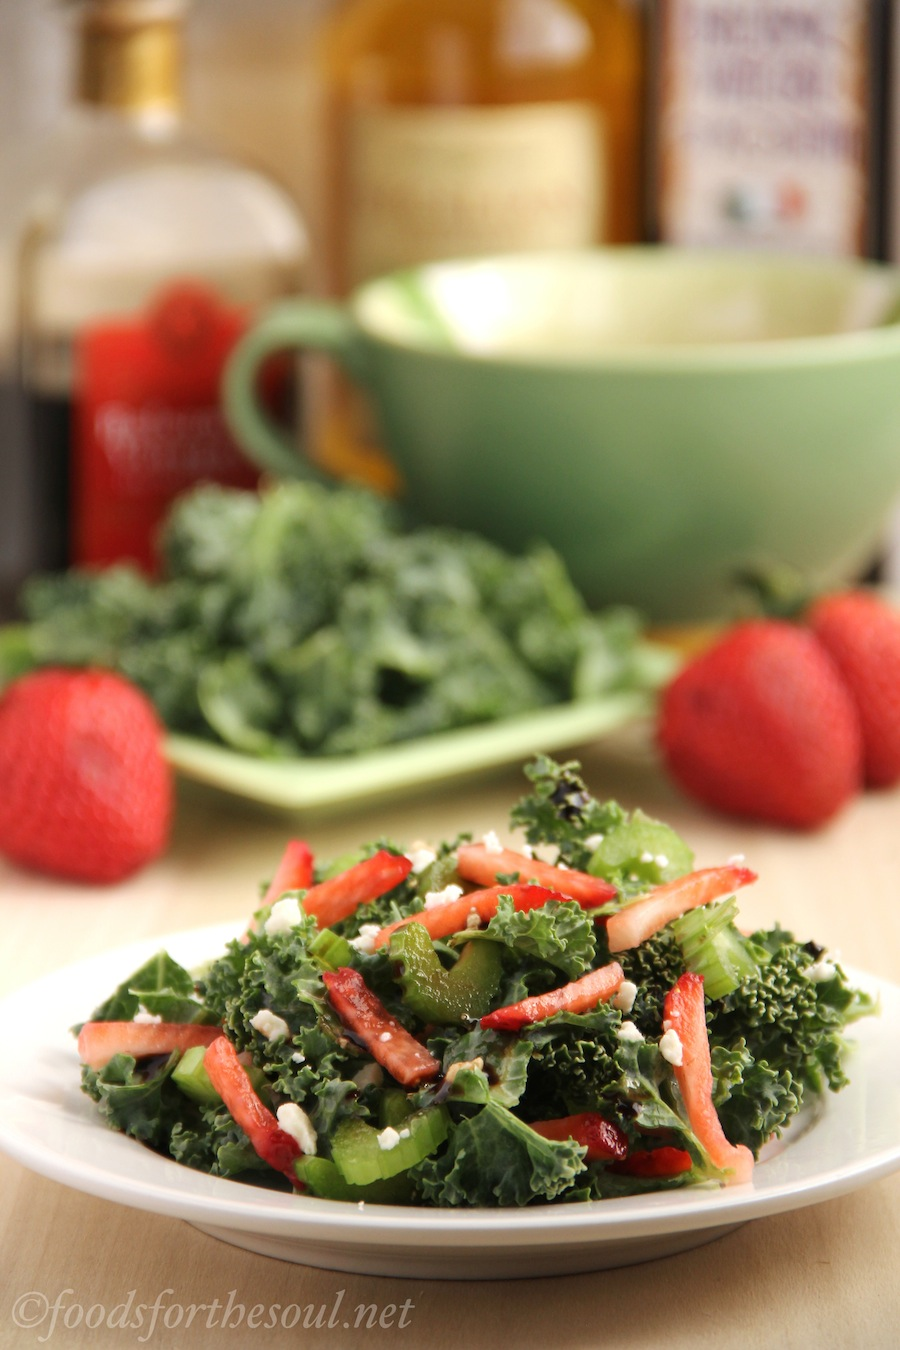 kale salad with strawberries and celery